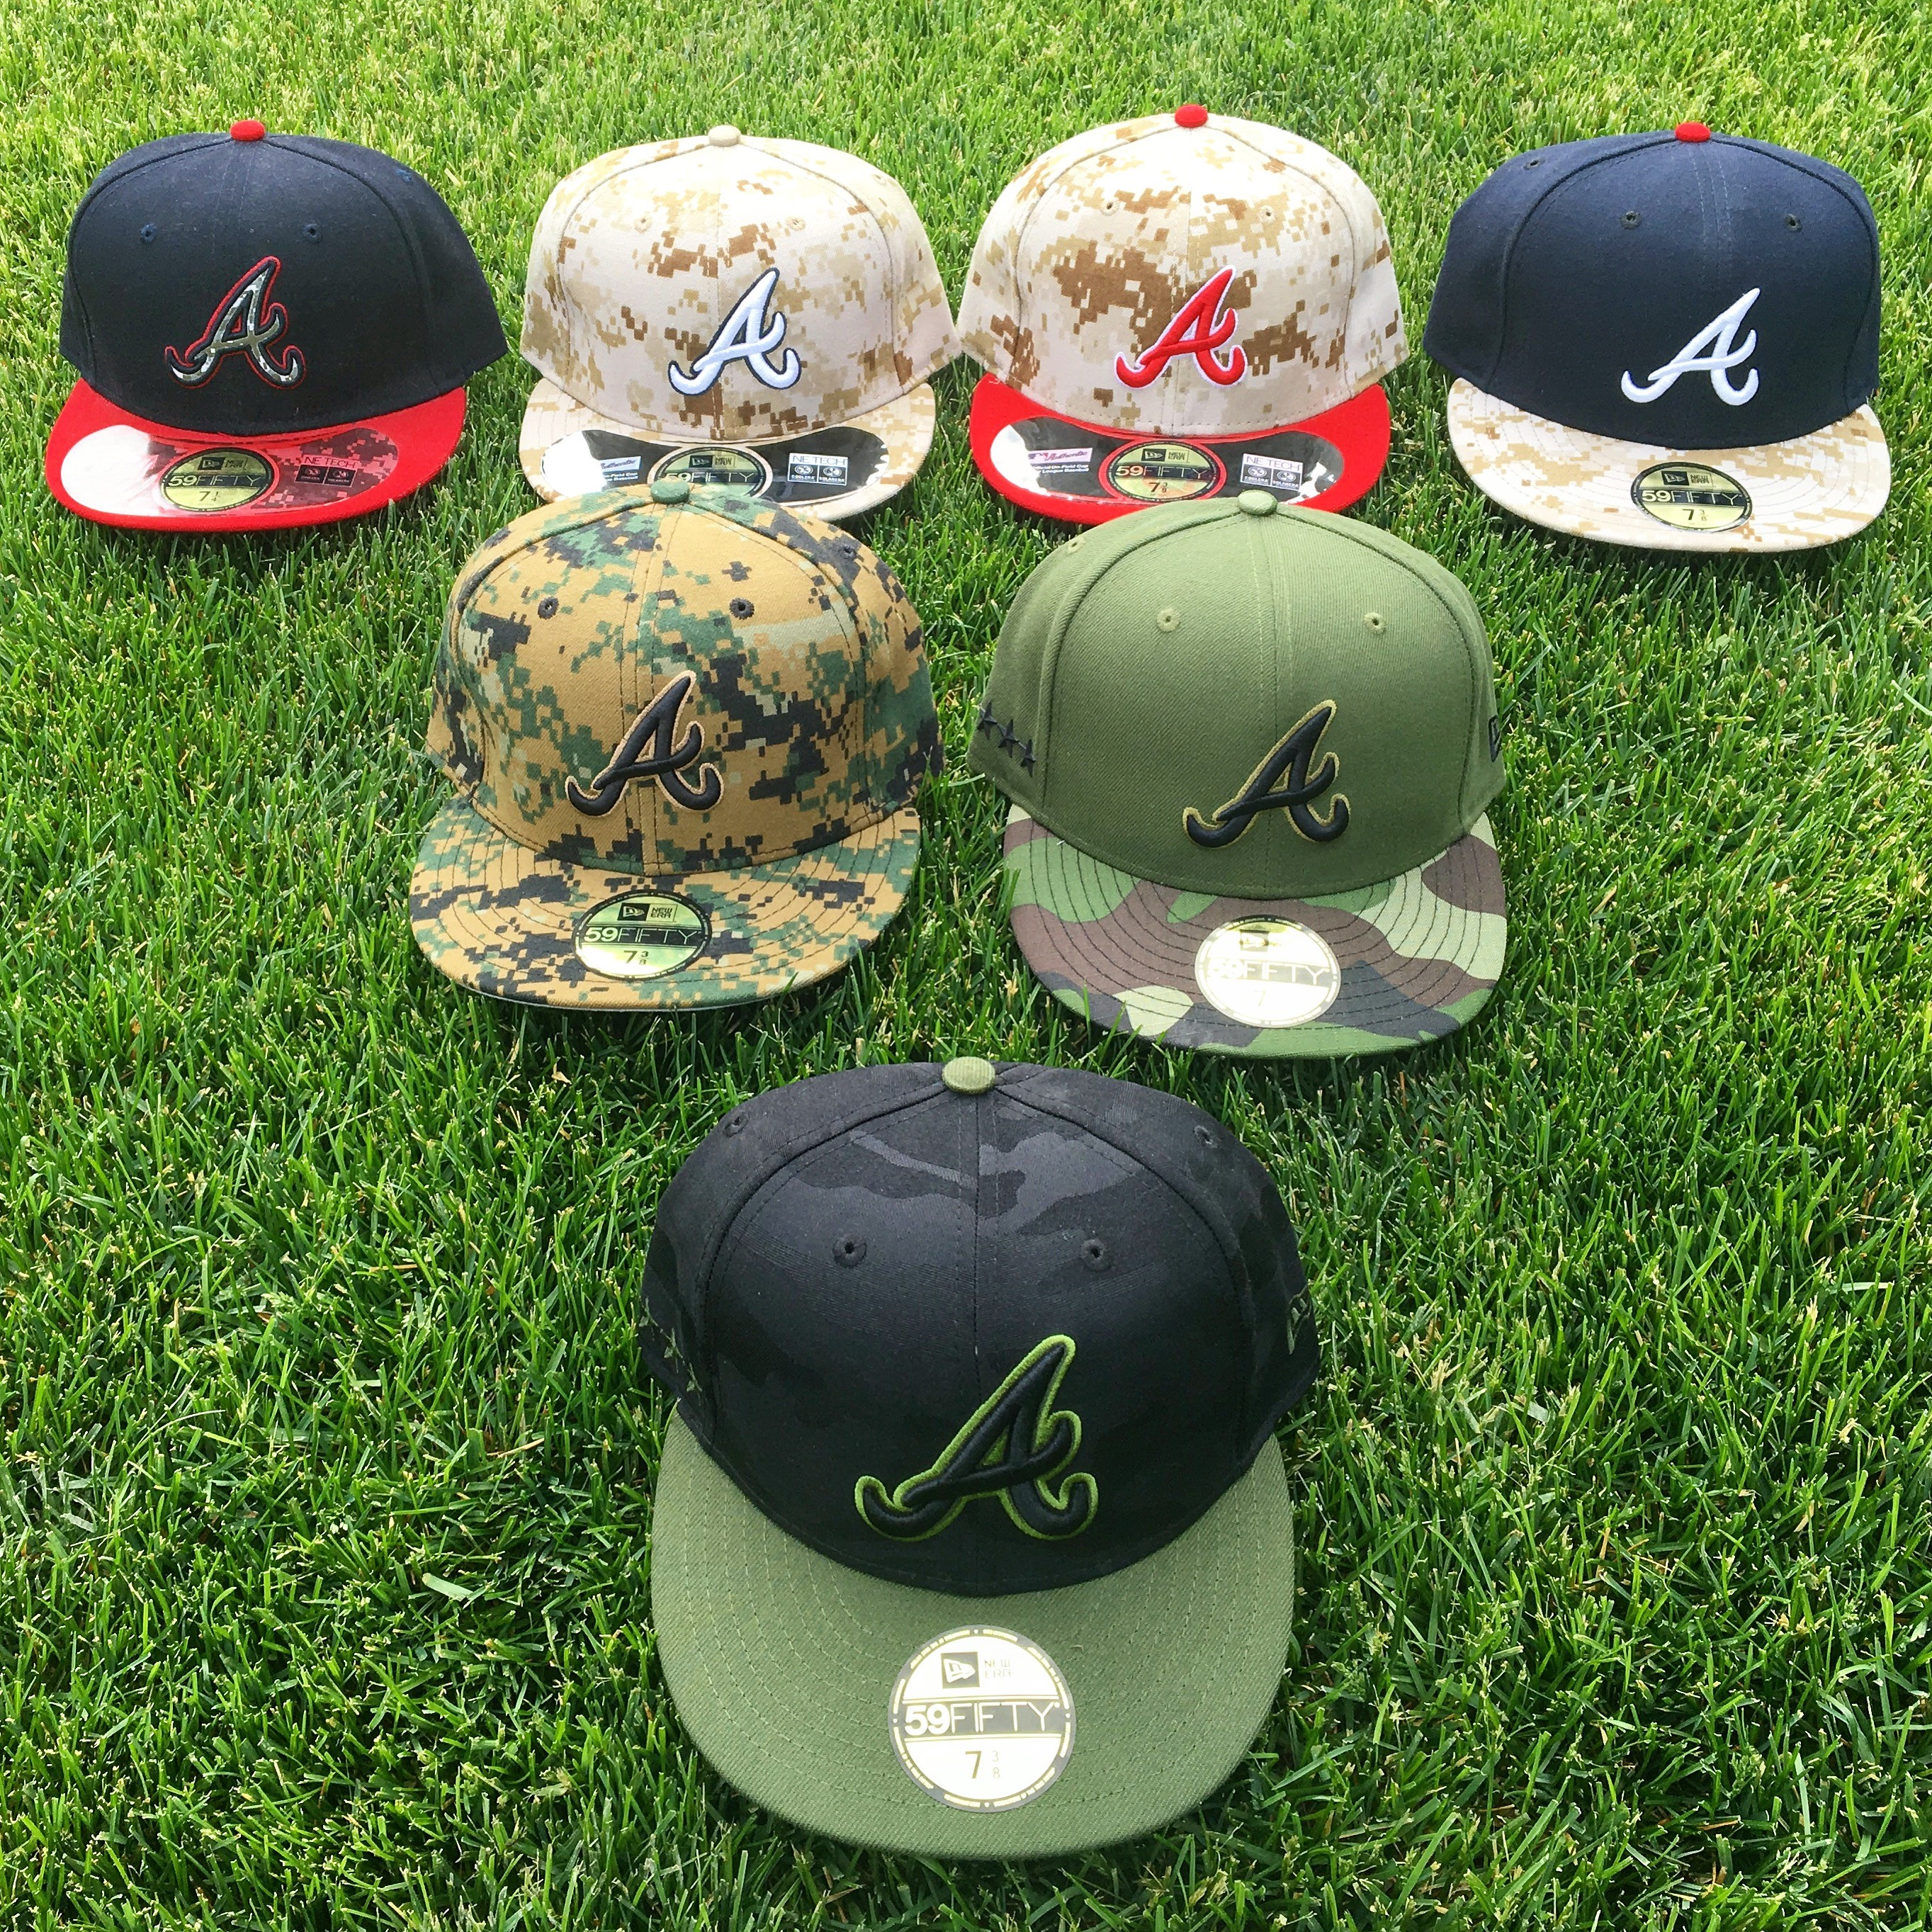 Atlanta Braves Memorial Day Caps